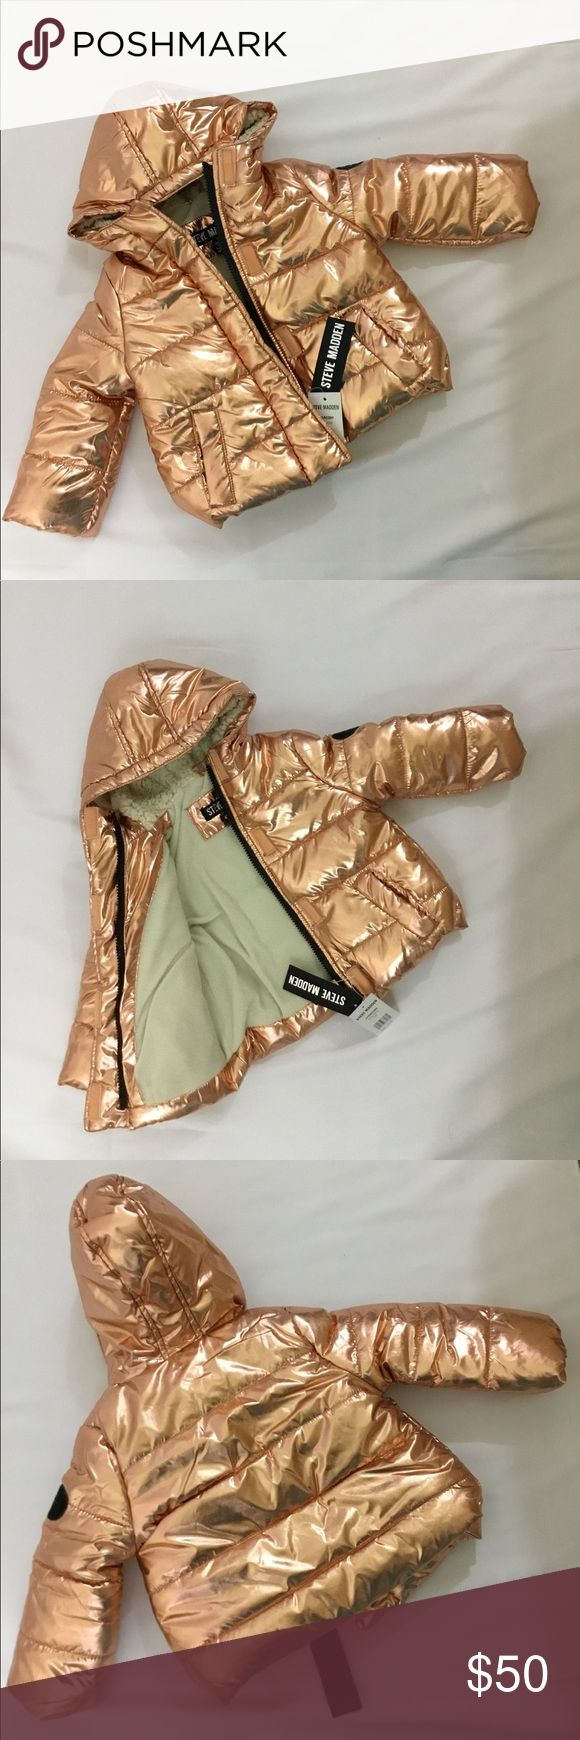 STEVE MADDEN Shiny Cire Puffer Jacket (baby girls) Adorable STEVE MADDEN rose gold baby puffer coat.  *Size 12 months.  *Attached hood with faux fur lining.  *Metallic *Long sleeves with banded cuffs.  *Zip front closure and 2 front slip pockets. *Quilted puffy design.  *Fleece lined.  *Shell/Lining/Fill/Faux Fur: 100% polyester. Steve Madden Jackets & Coats Puffers #babygirlcoats